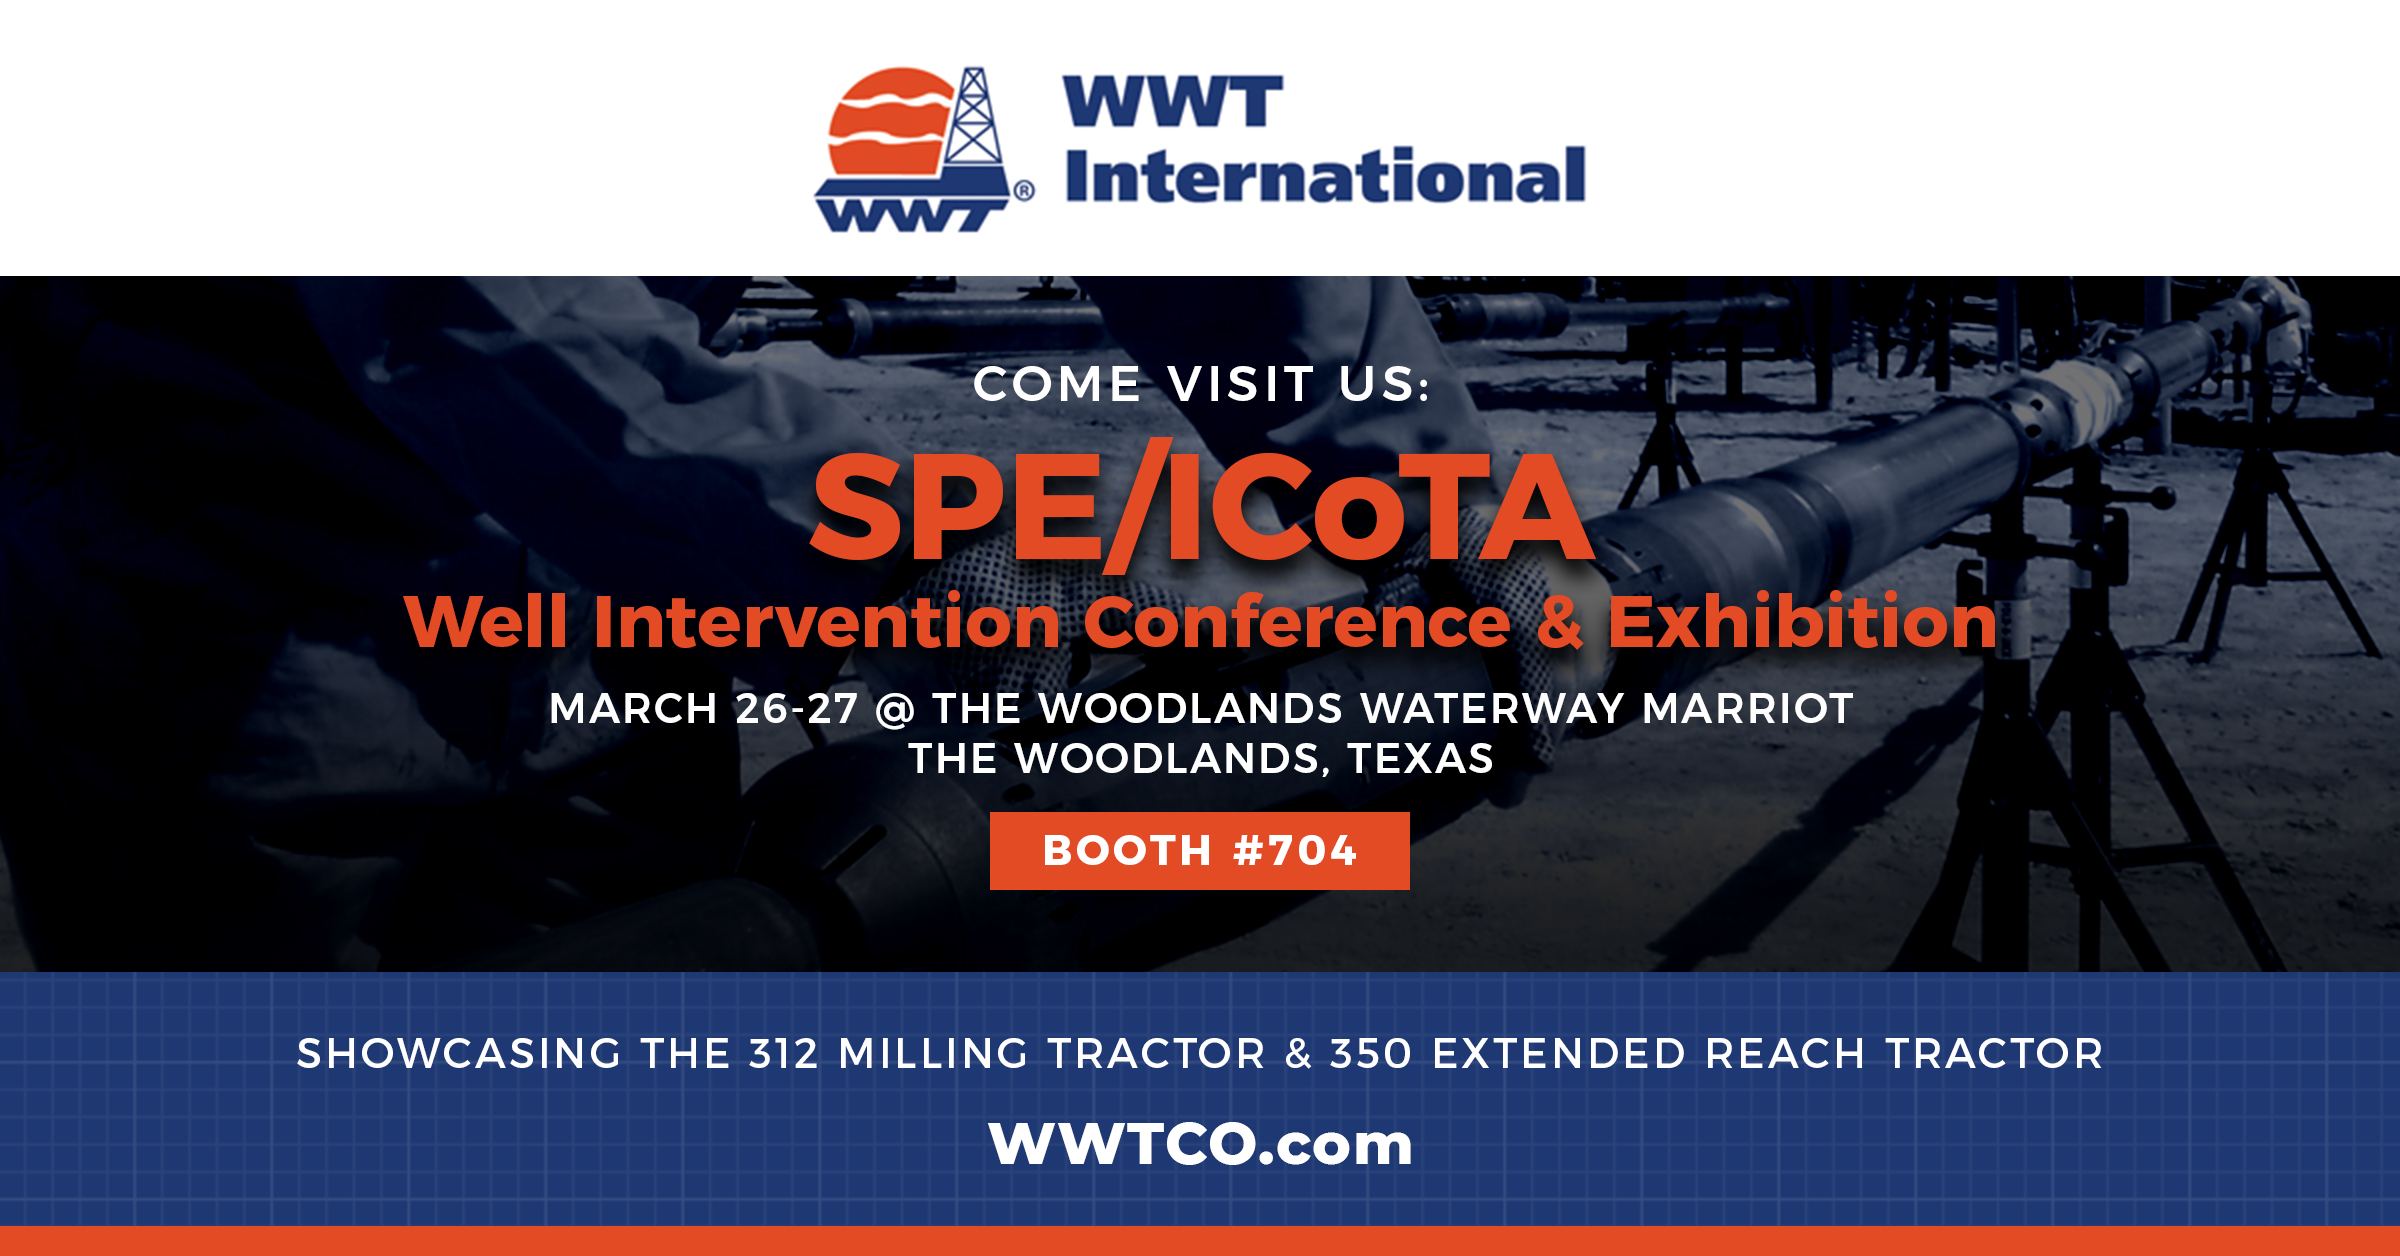 MARK YOUR CALENDARS: WWT International Joining SPE/ICoTA Well Intervention Conference and Exhibition 2019